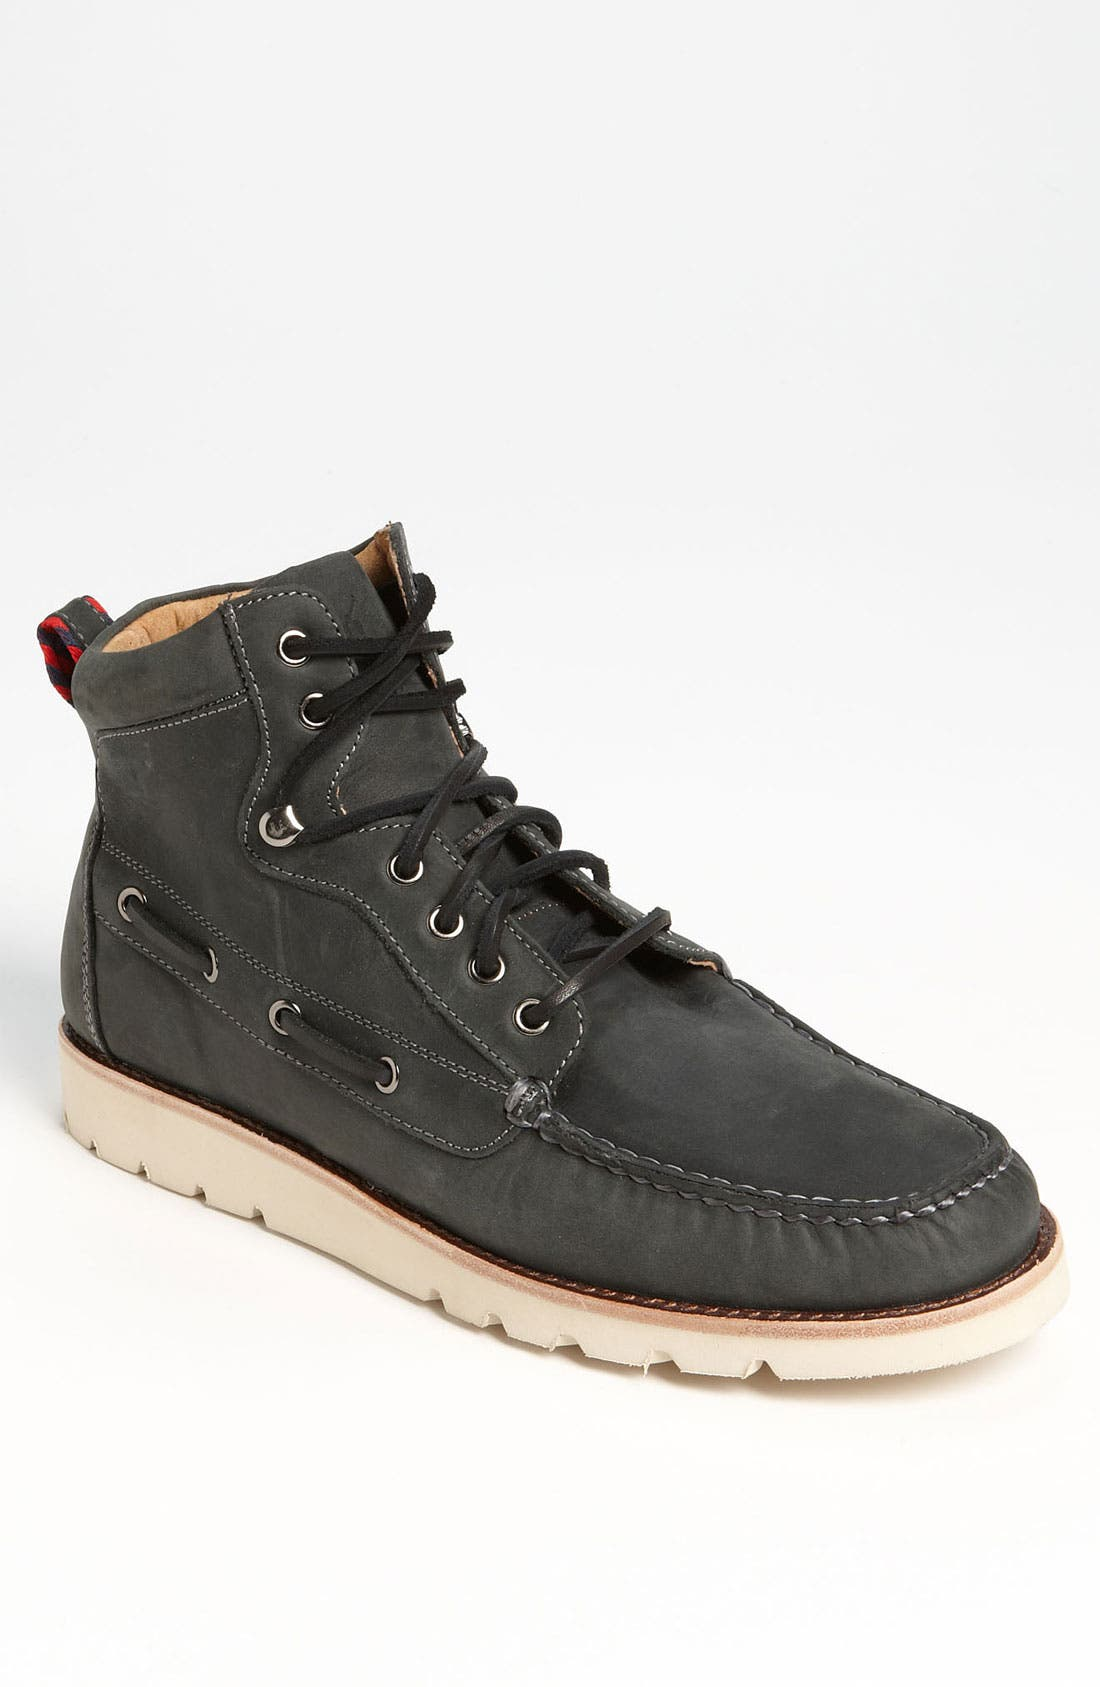 Alternate Image 1 Selected - Polo Ralph Lauren 'Salisbury' Moc Toe Boot